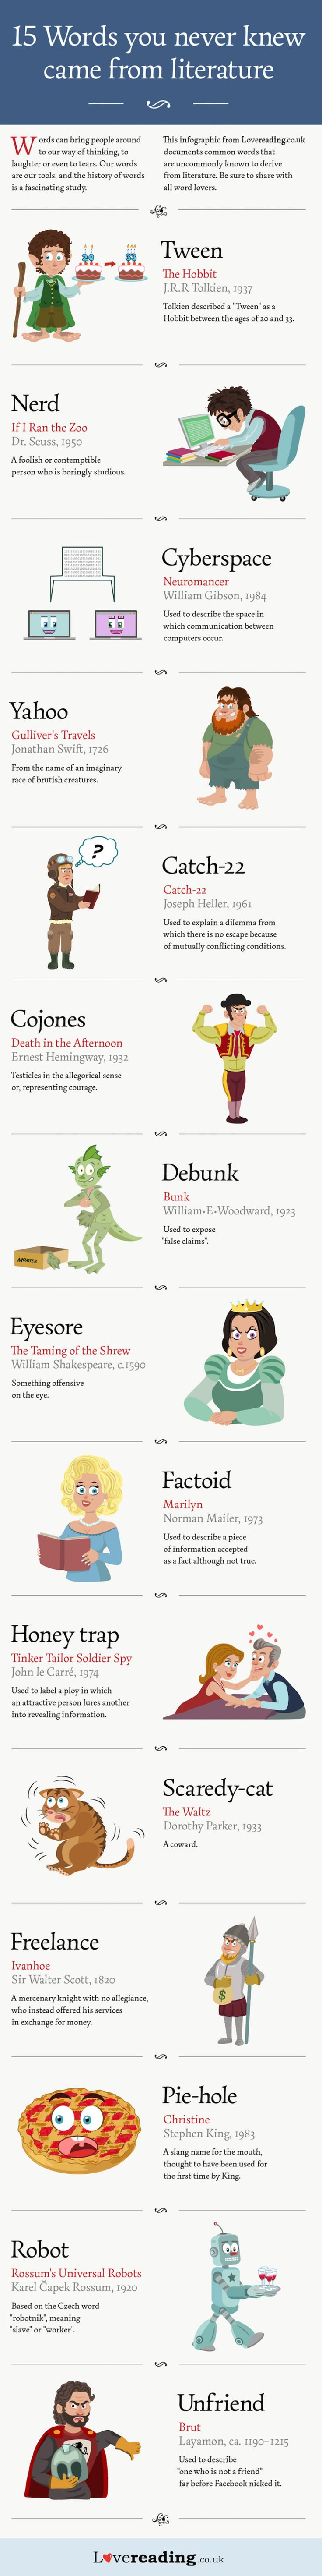 The infographic documents common words that are uncommonly known to originate from literature.